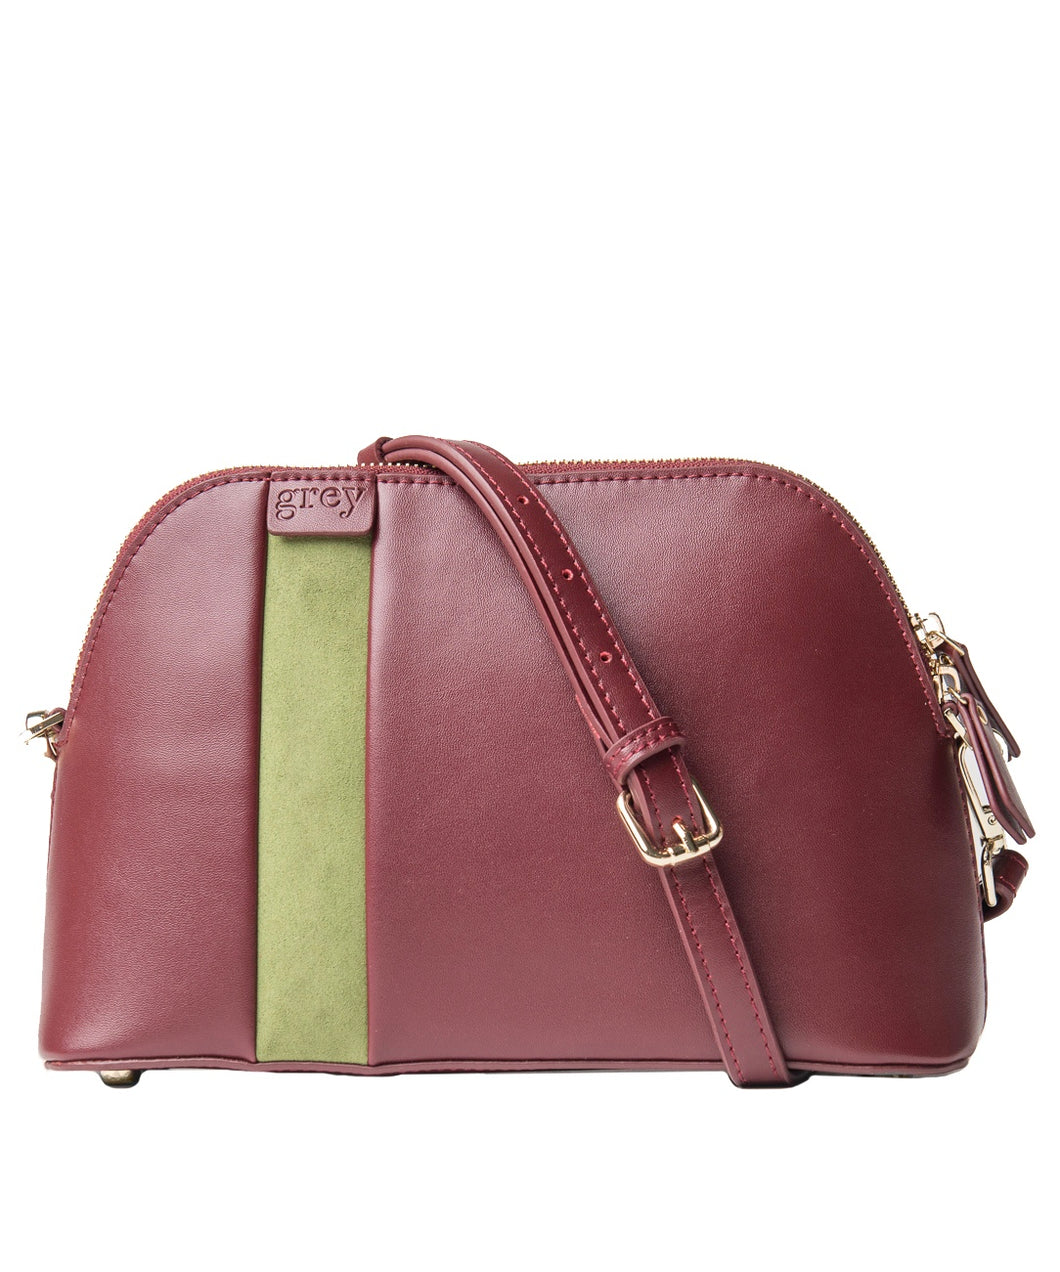 Mayden Cross Body (Burgundy Leather with Green Suede) - greyortenhill